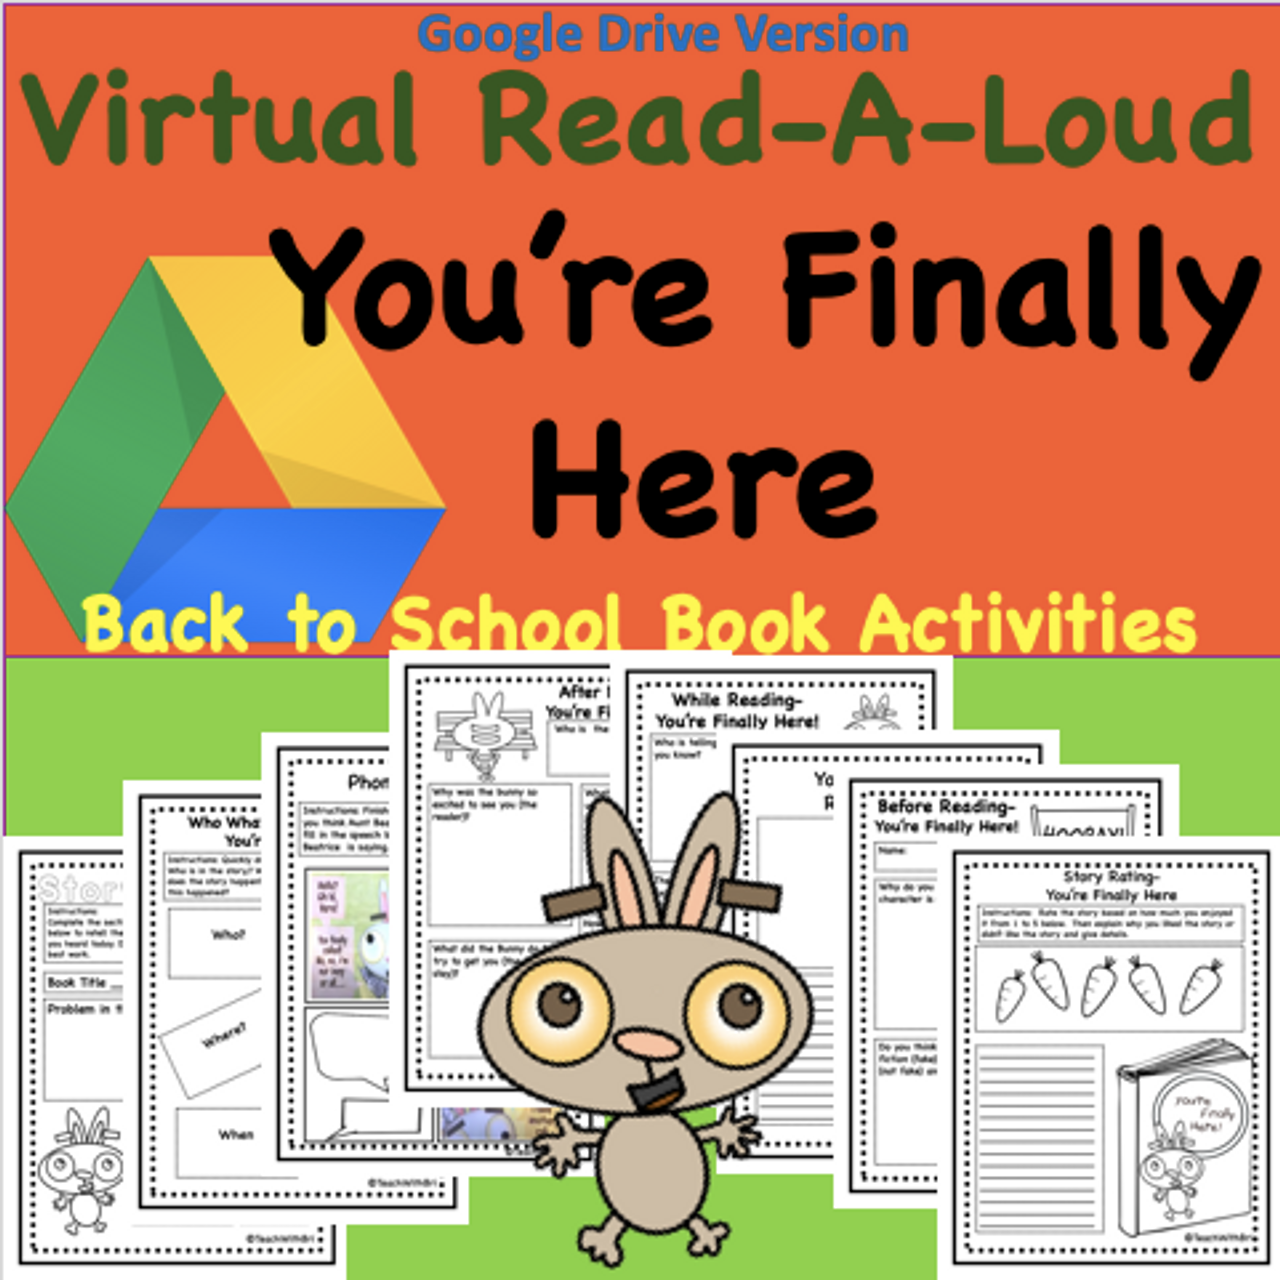 Digital Version - Virtual Read-A-Loud- You're Finally Here- Student Reading Activities for Beginning of School Year